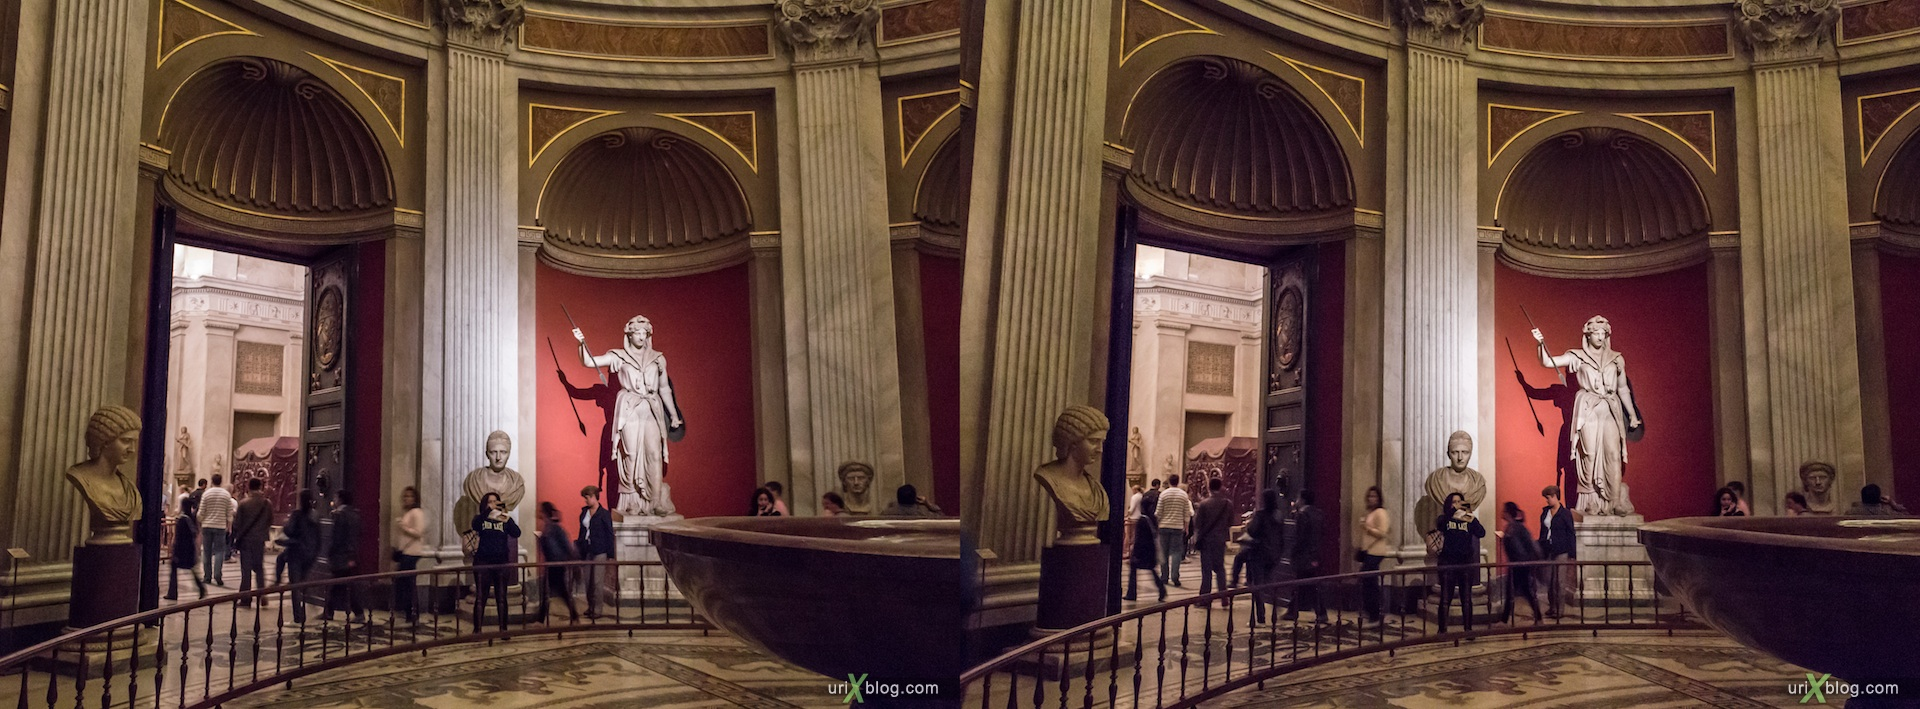 2012, Vatican museums, Rome, Italy, 3D, stereo pair, cross-eyed, crossview, cross view stereo pair